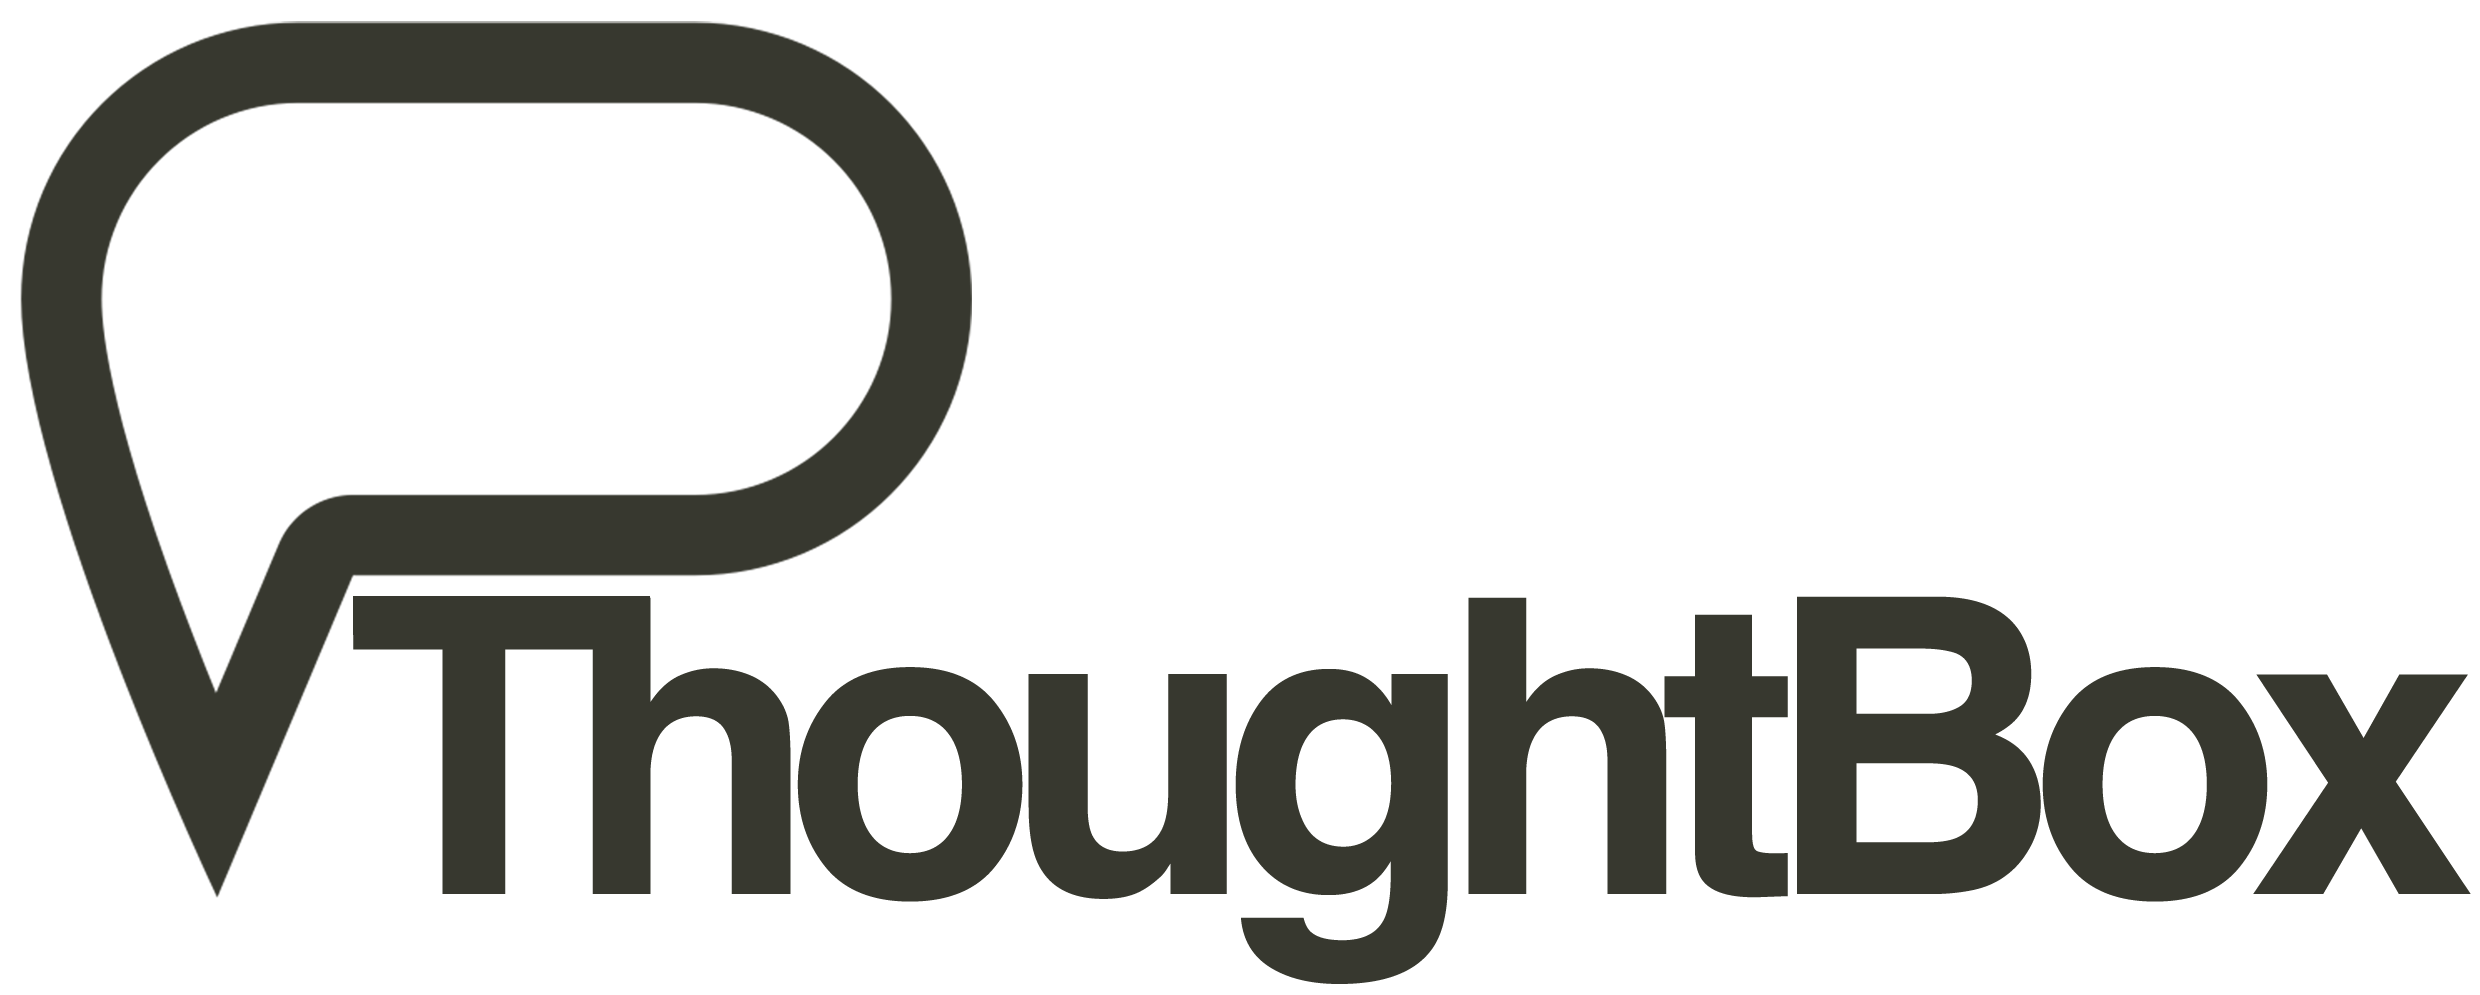 ThoughtBox logo